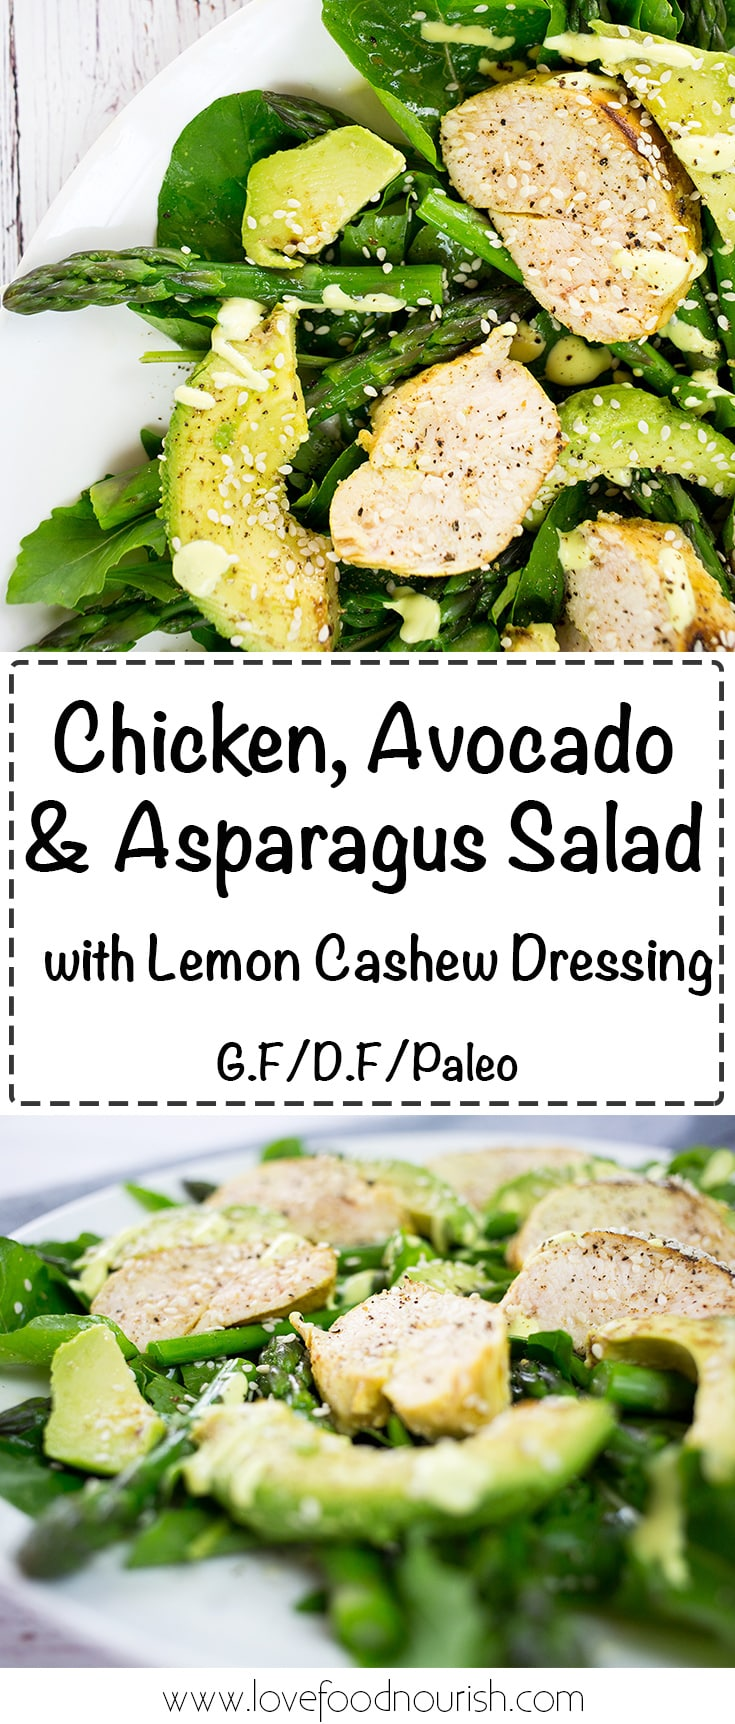 Chicken, Avocado & Asparagus Salad with Lemon Cashew Dressing - A healthy and fresh chicken salad with a creamy dairy free lemon dressing. #paleo #glutenfree #dairyfree #chickensalad #avocado #chicken #salad